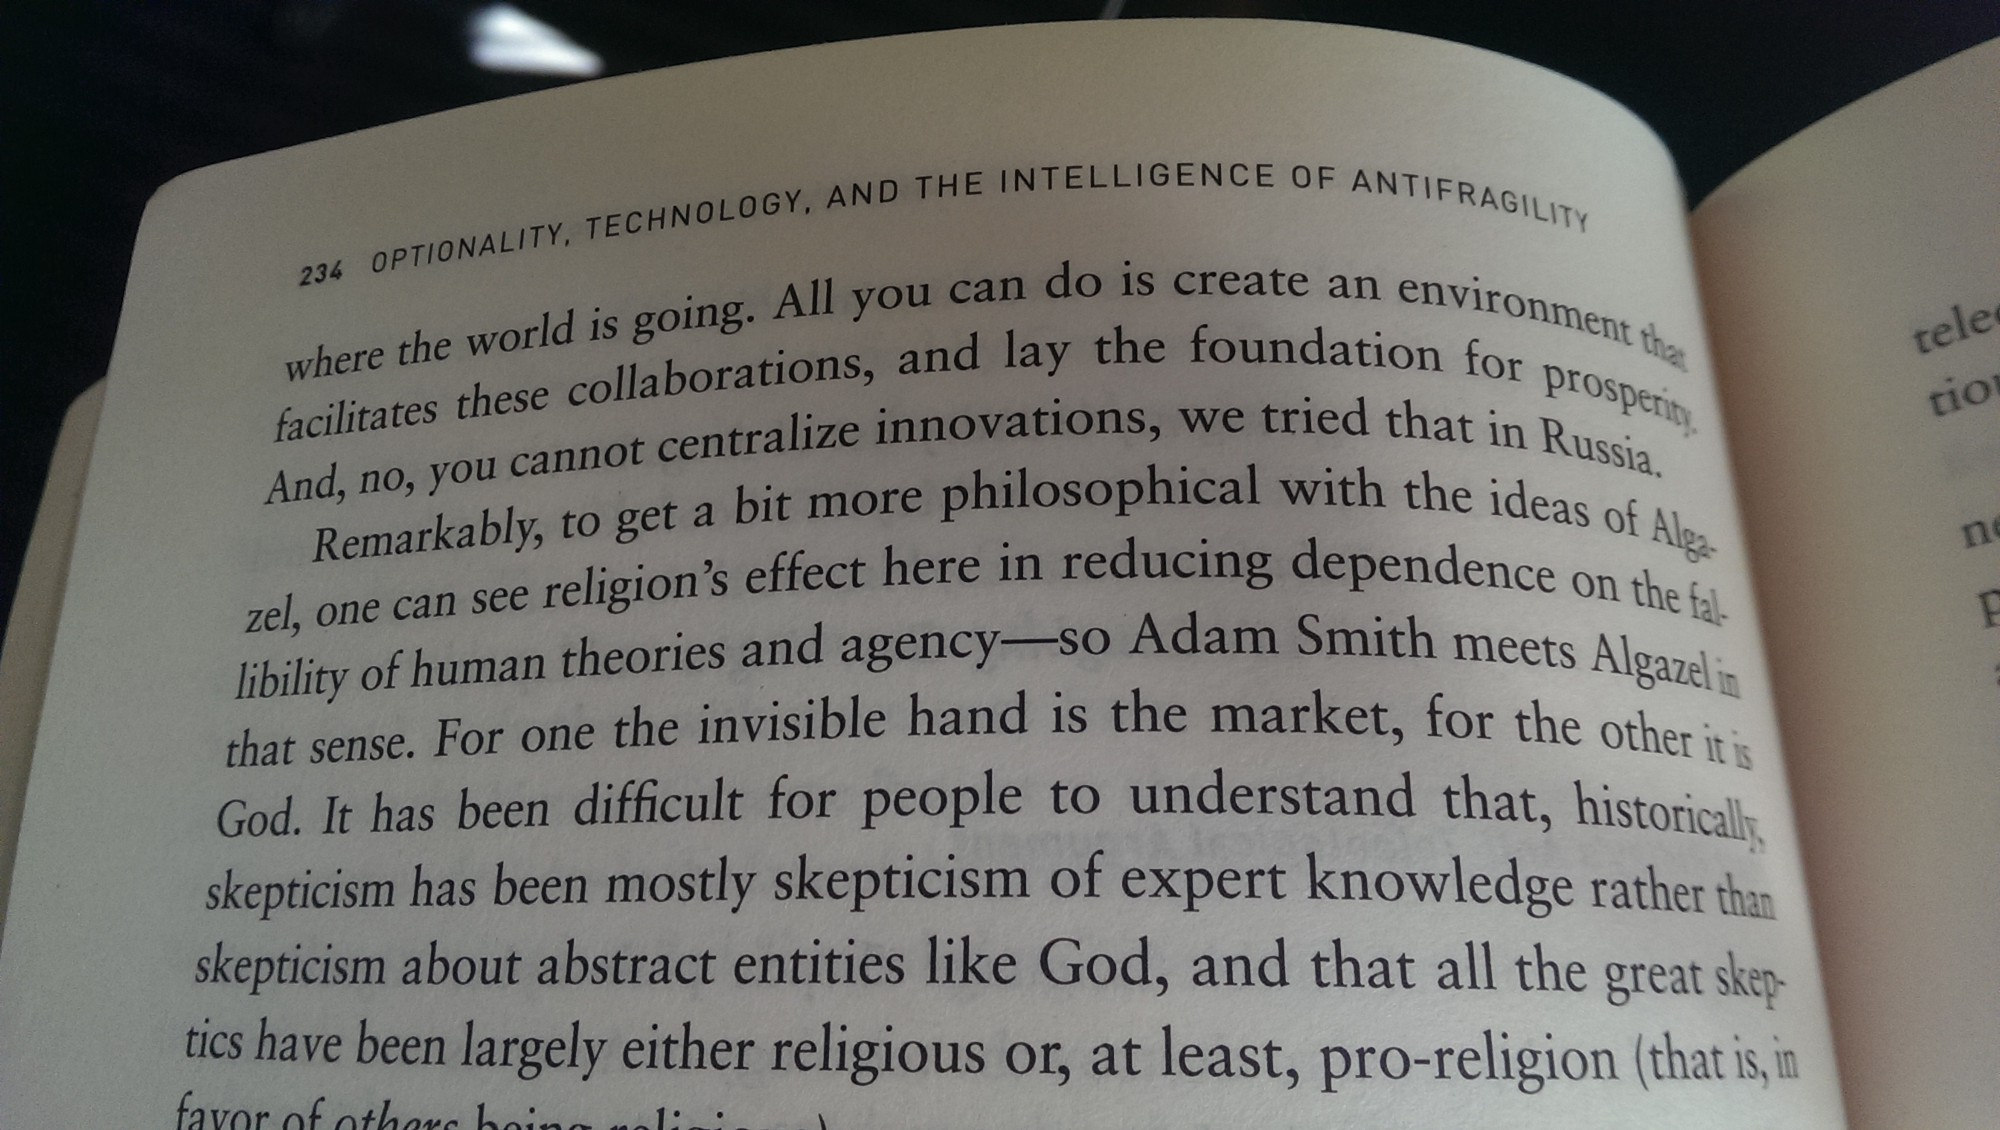 An experiment with the different world religions a clear and empty -  From Antifragile P 233 234